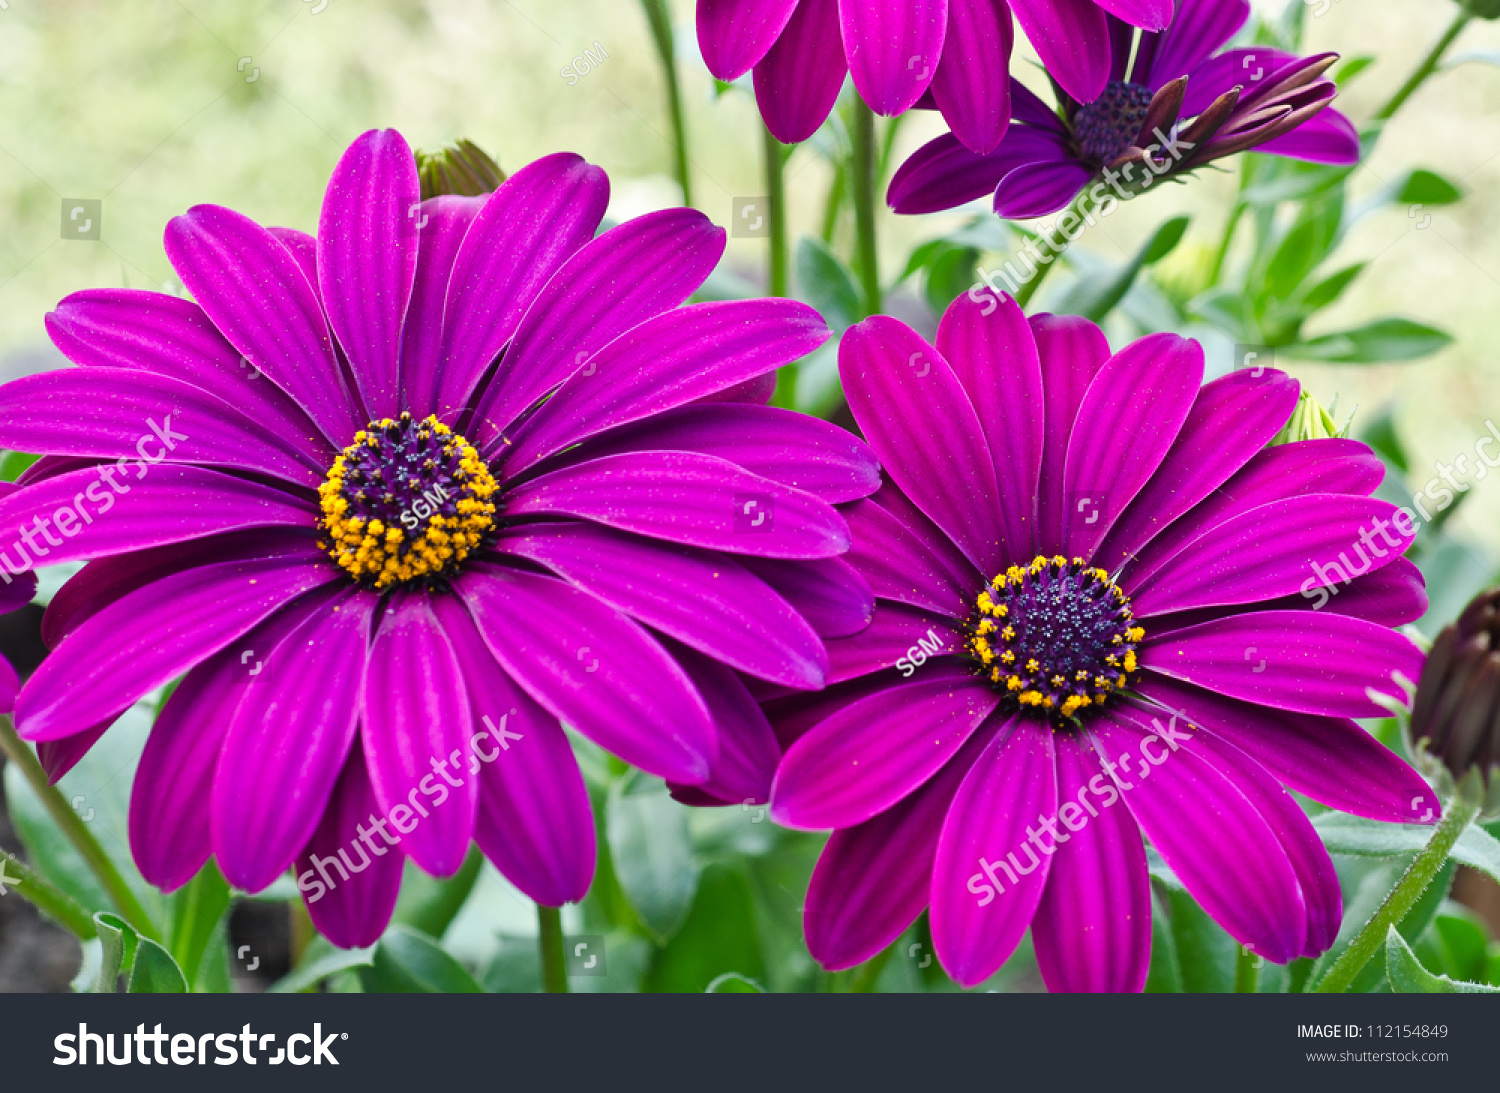 Purple daisy flowers osteospermum stock photo edit now 112154849 purple daisy flowers osteospermum izmirmasajfo